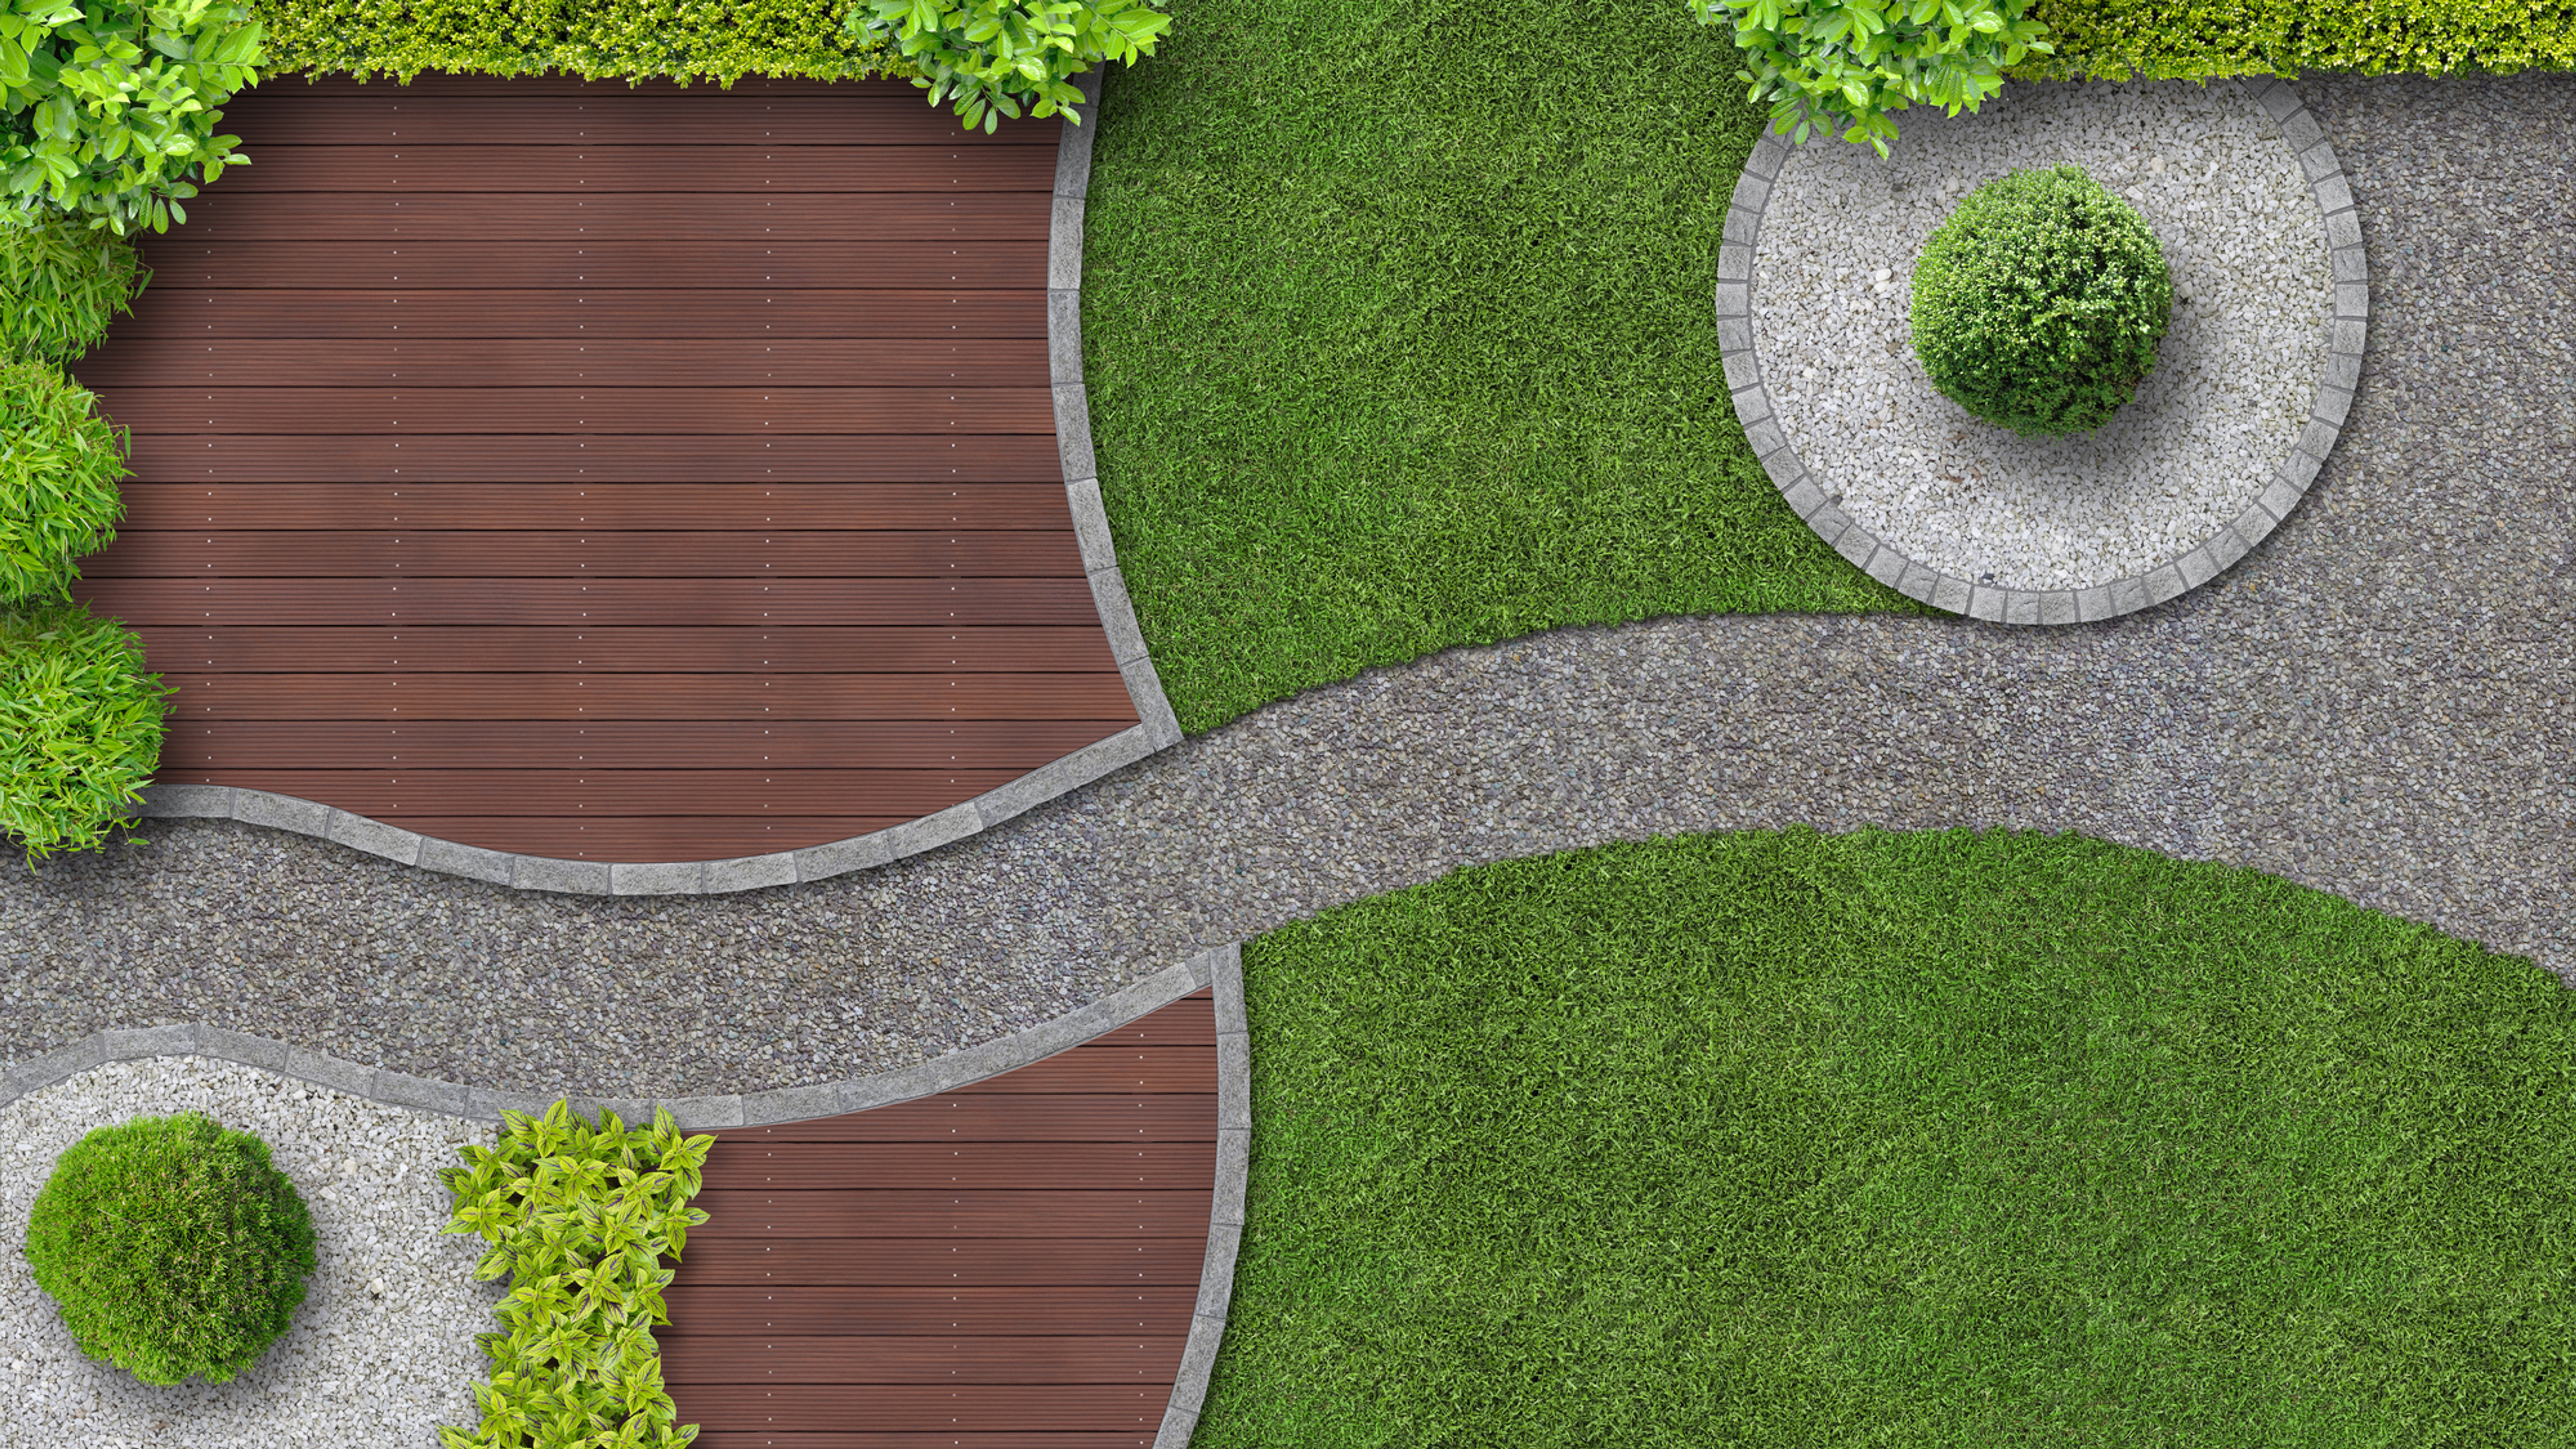 Landscaping redesign